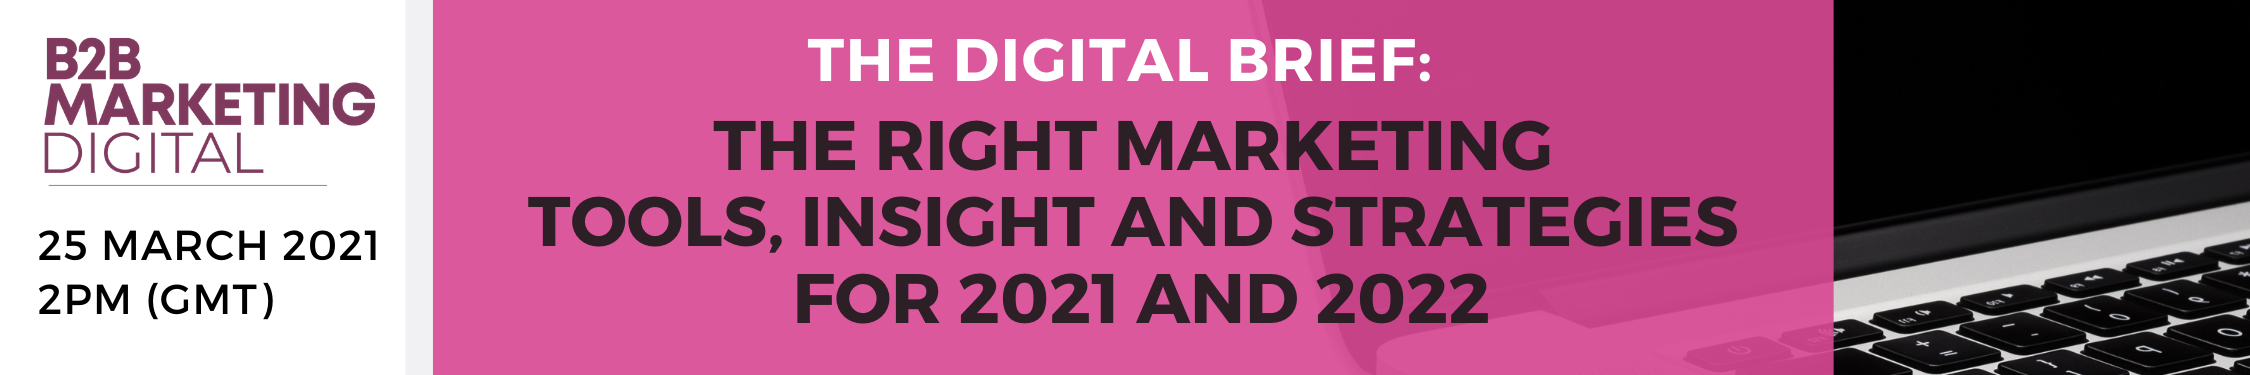 B2B Marketing Webisode: The Right marketing tools for 2021 and 2022